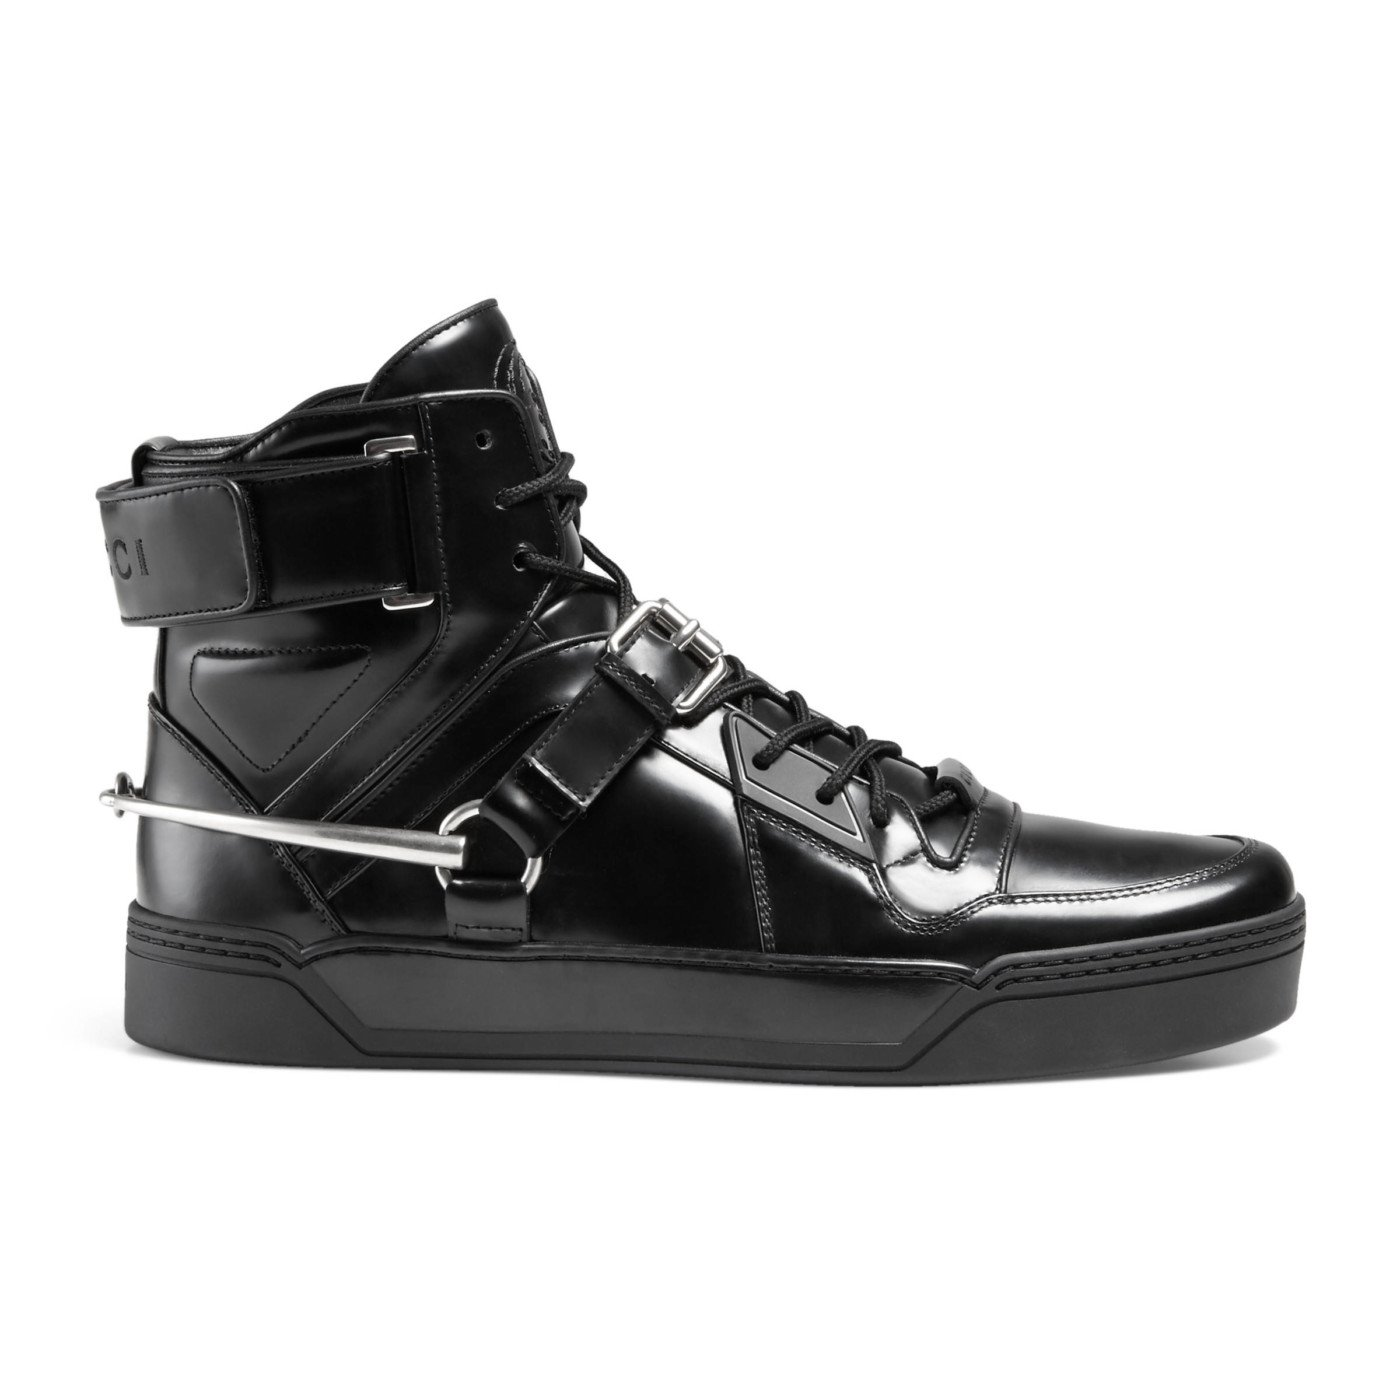 0510140ad85 Top1  Gucci Men s Black Shiny Leather GG Horsebit High Top Sneakers Shoes